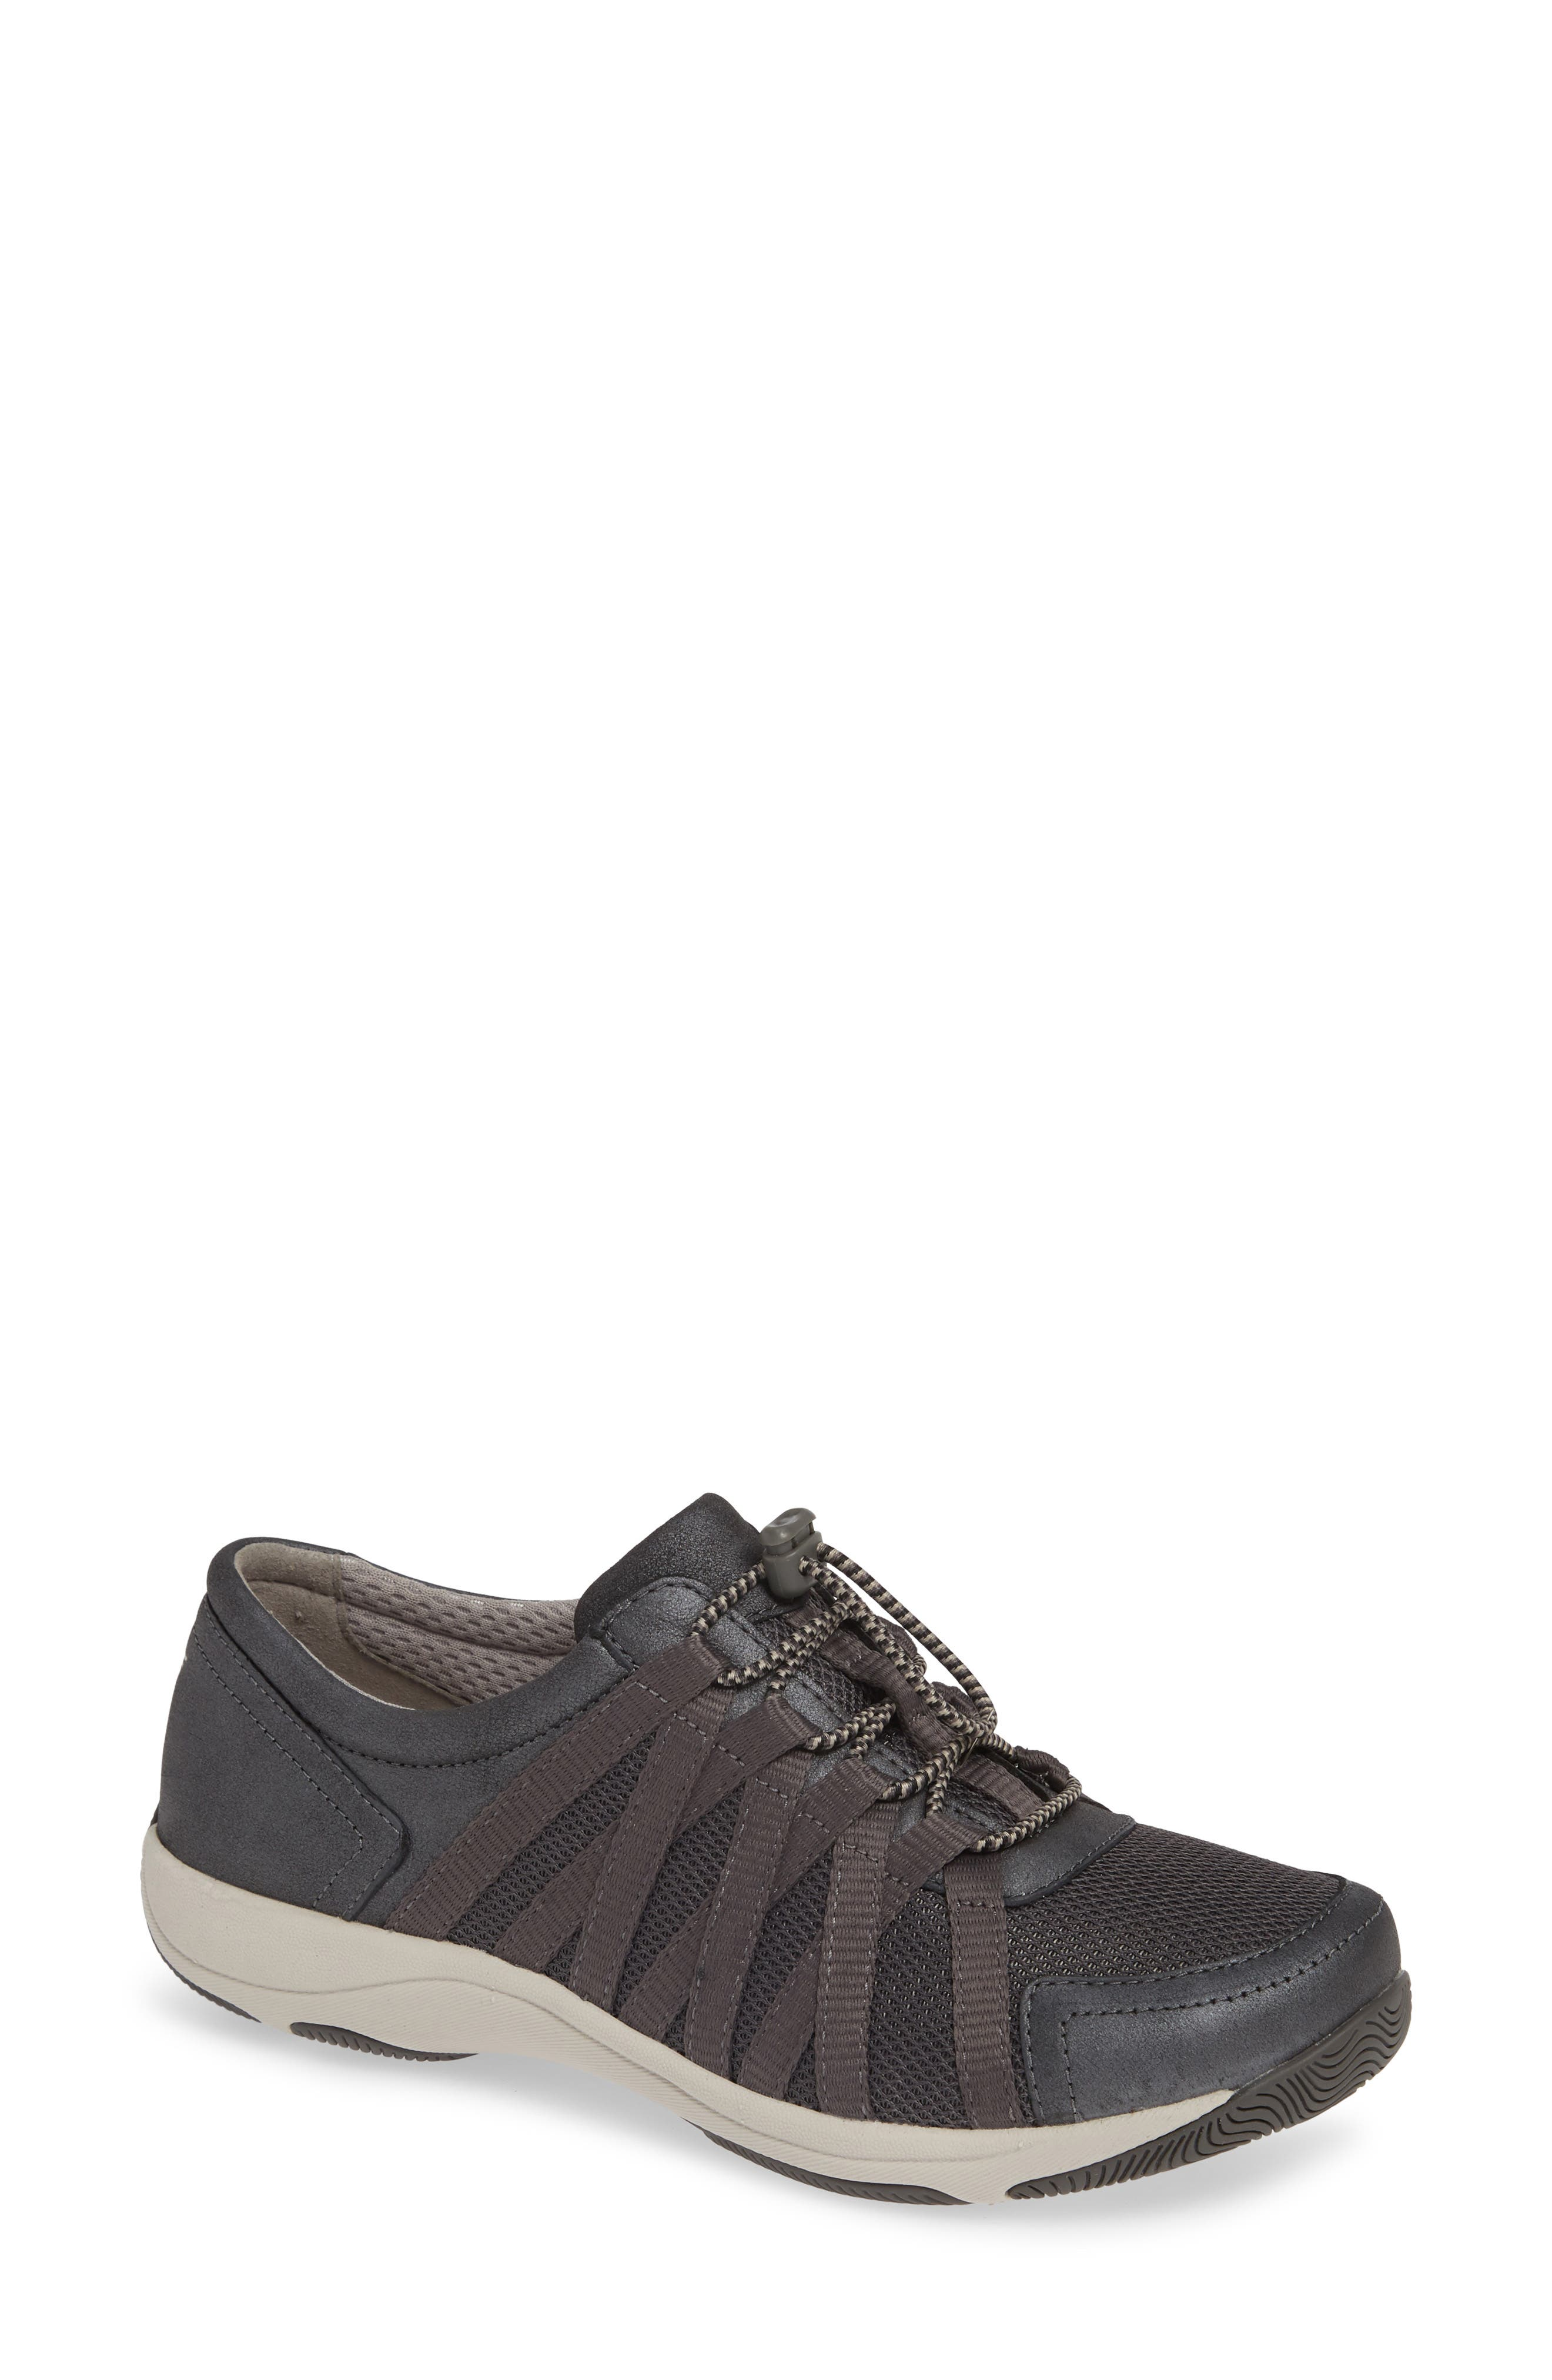 Halifax Collection Honor Sneaker,                             Main thumbnail 1, color,                             CHARCOAL/ CHARCOAL SUEDE